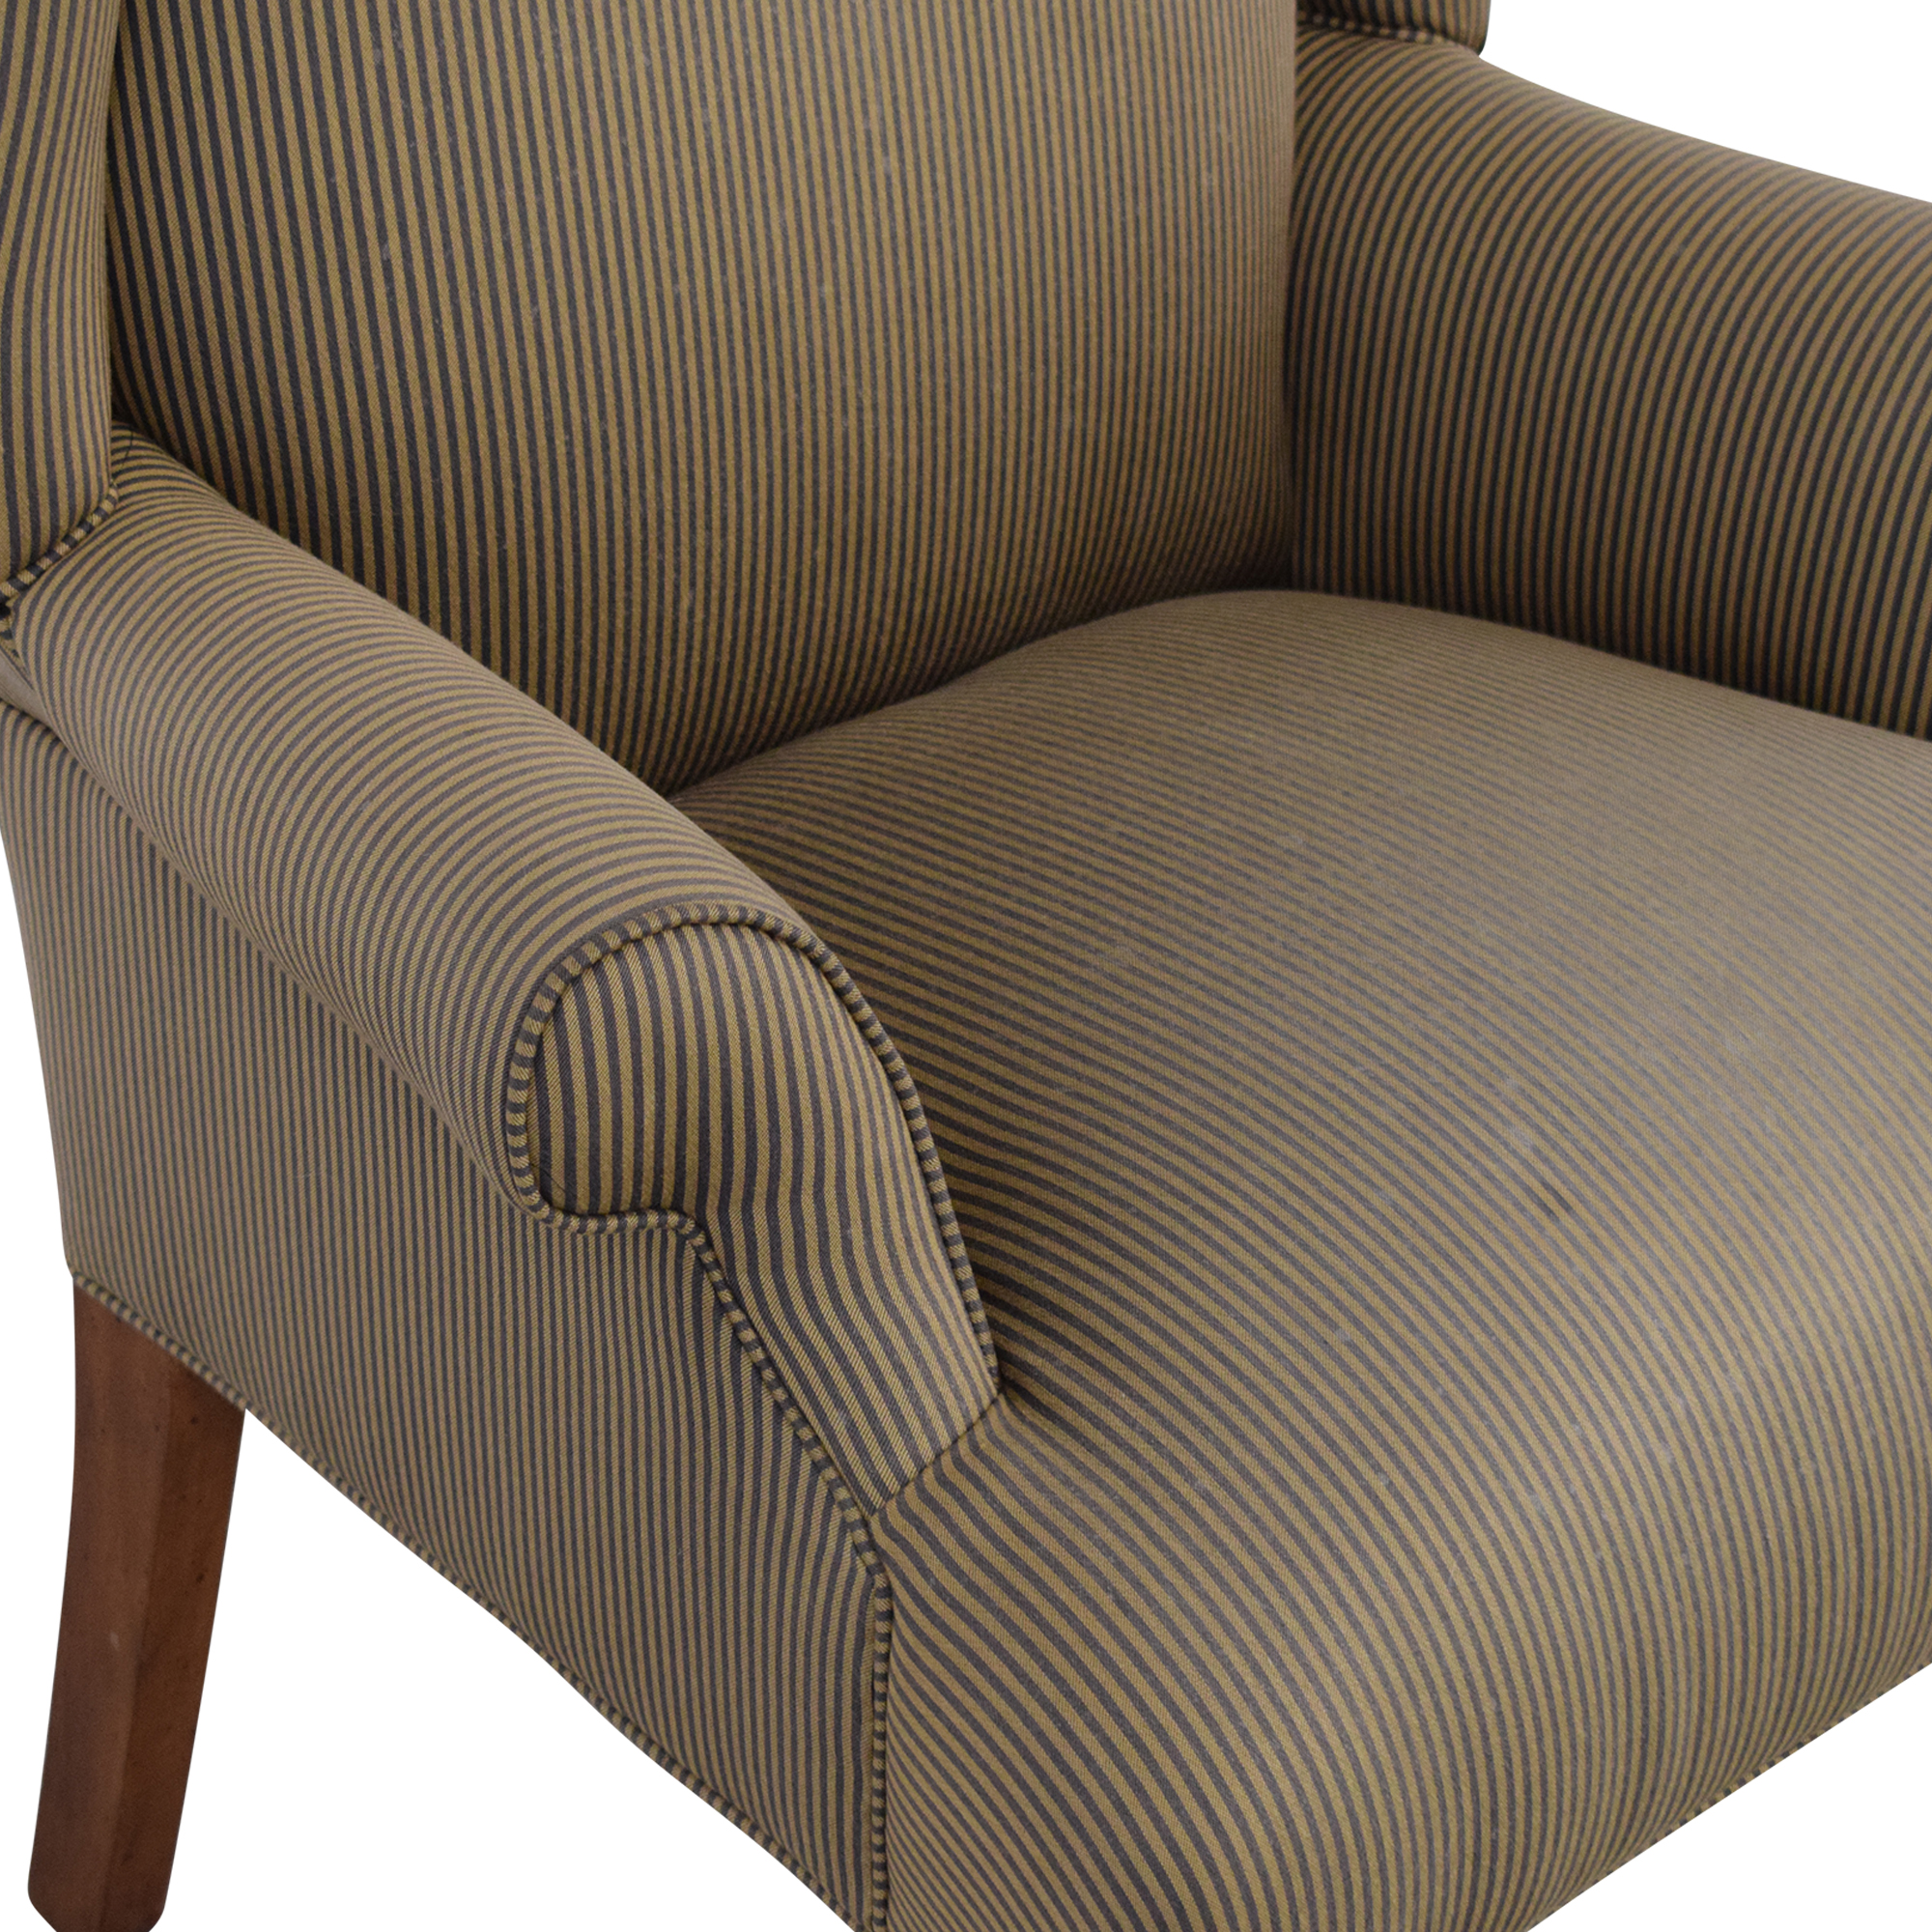 Ethan Allen Skylar Wing Chair / Chairs